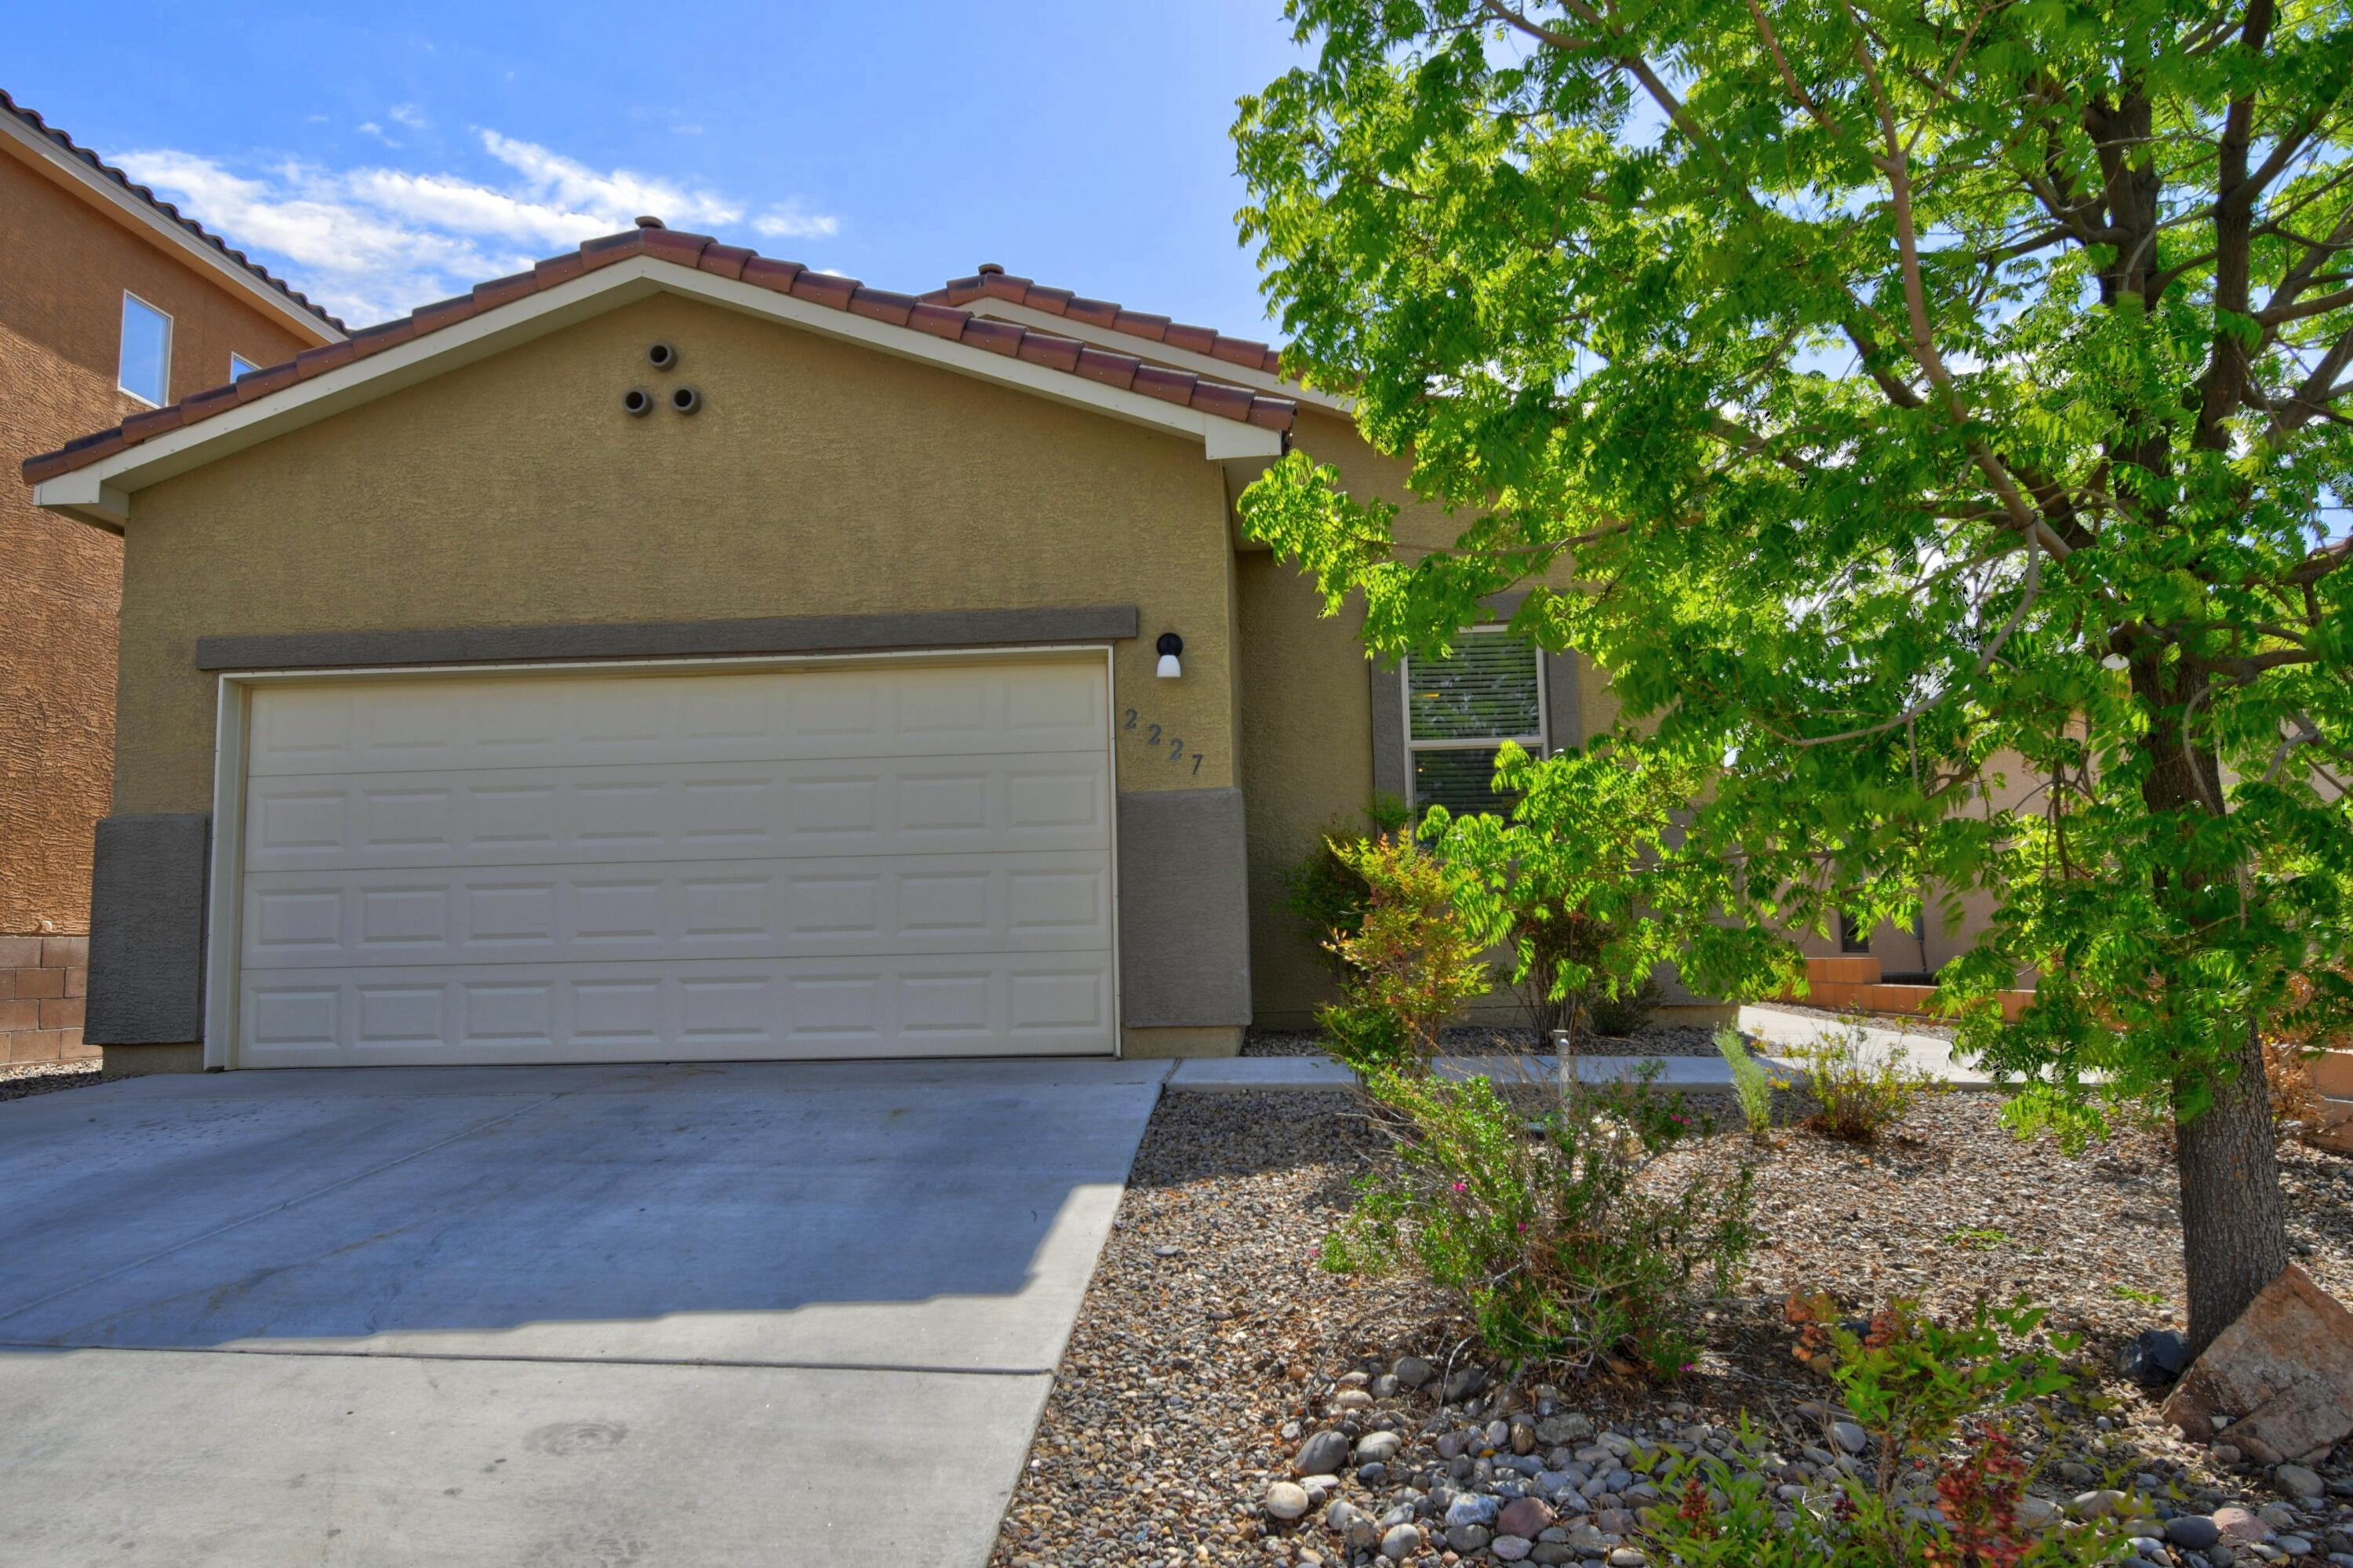 Move in ready! Single story, 3 bedroom plus office/study and 2 full baths. Open concept, kitchen with stainless steel appliances, granite and tile backsplash. Master bedroom with spacious walk-in closet, the master bath has separate shower and tub with double sinks. Shows beautifully. Highly desirable Cabezon neighborhood and amenities.